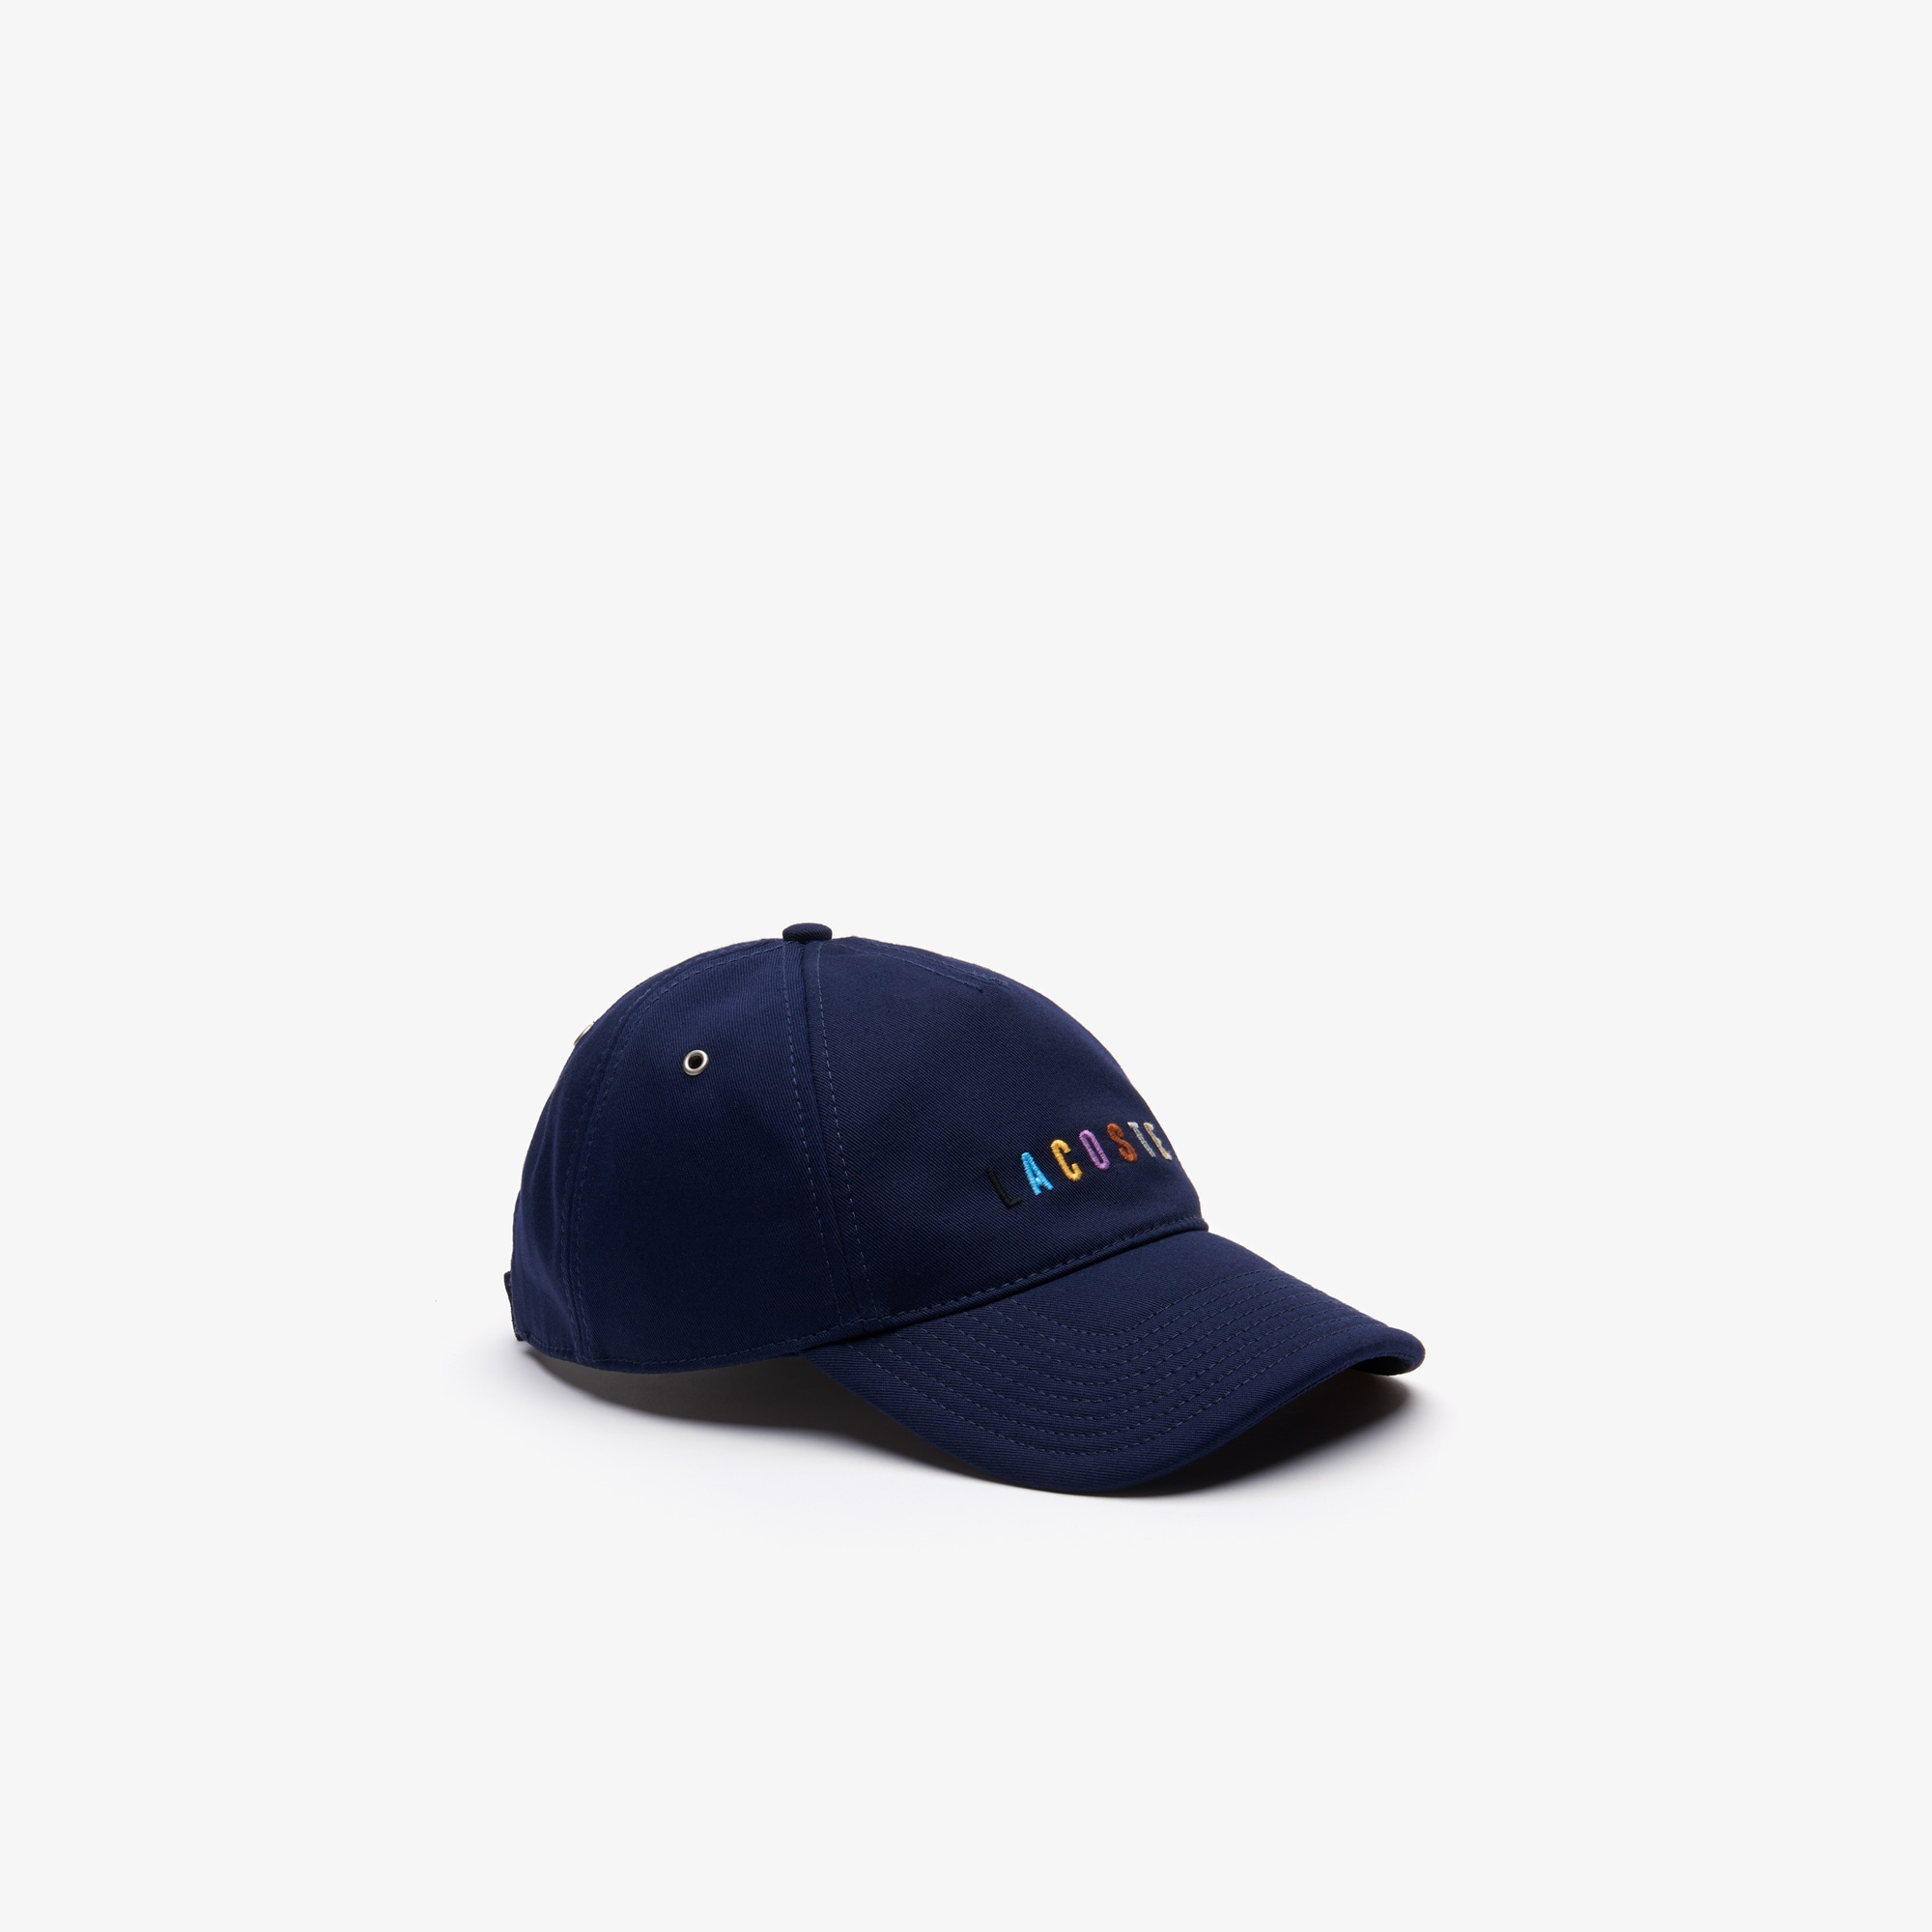 Men's Multicolored Logo Cotton Cap